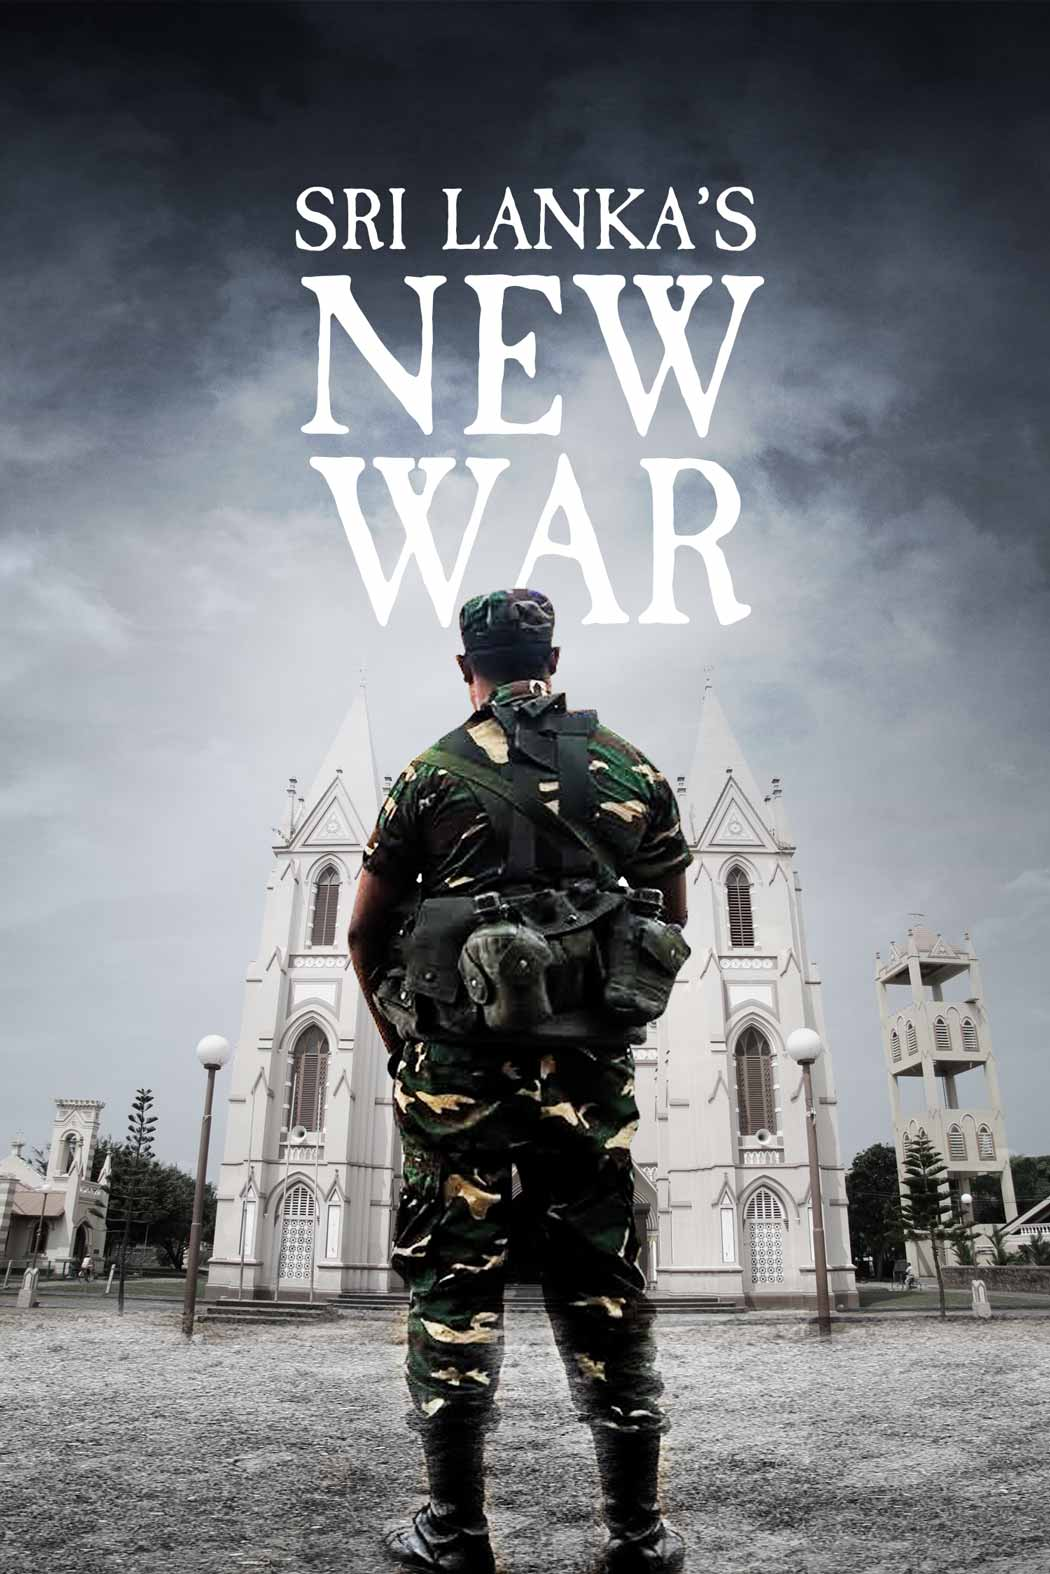 Sri Lanka's New War